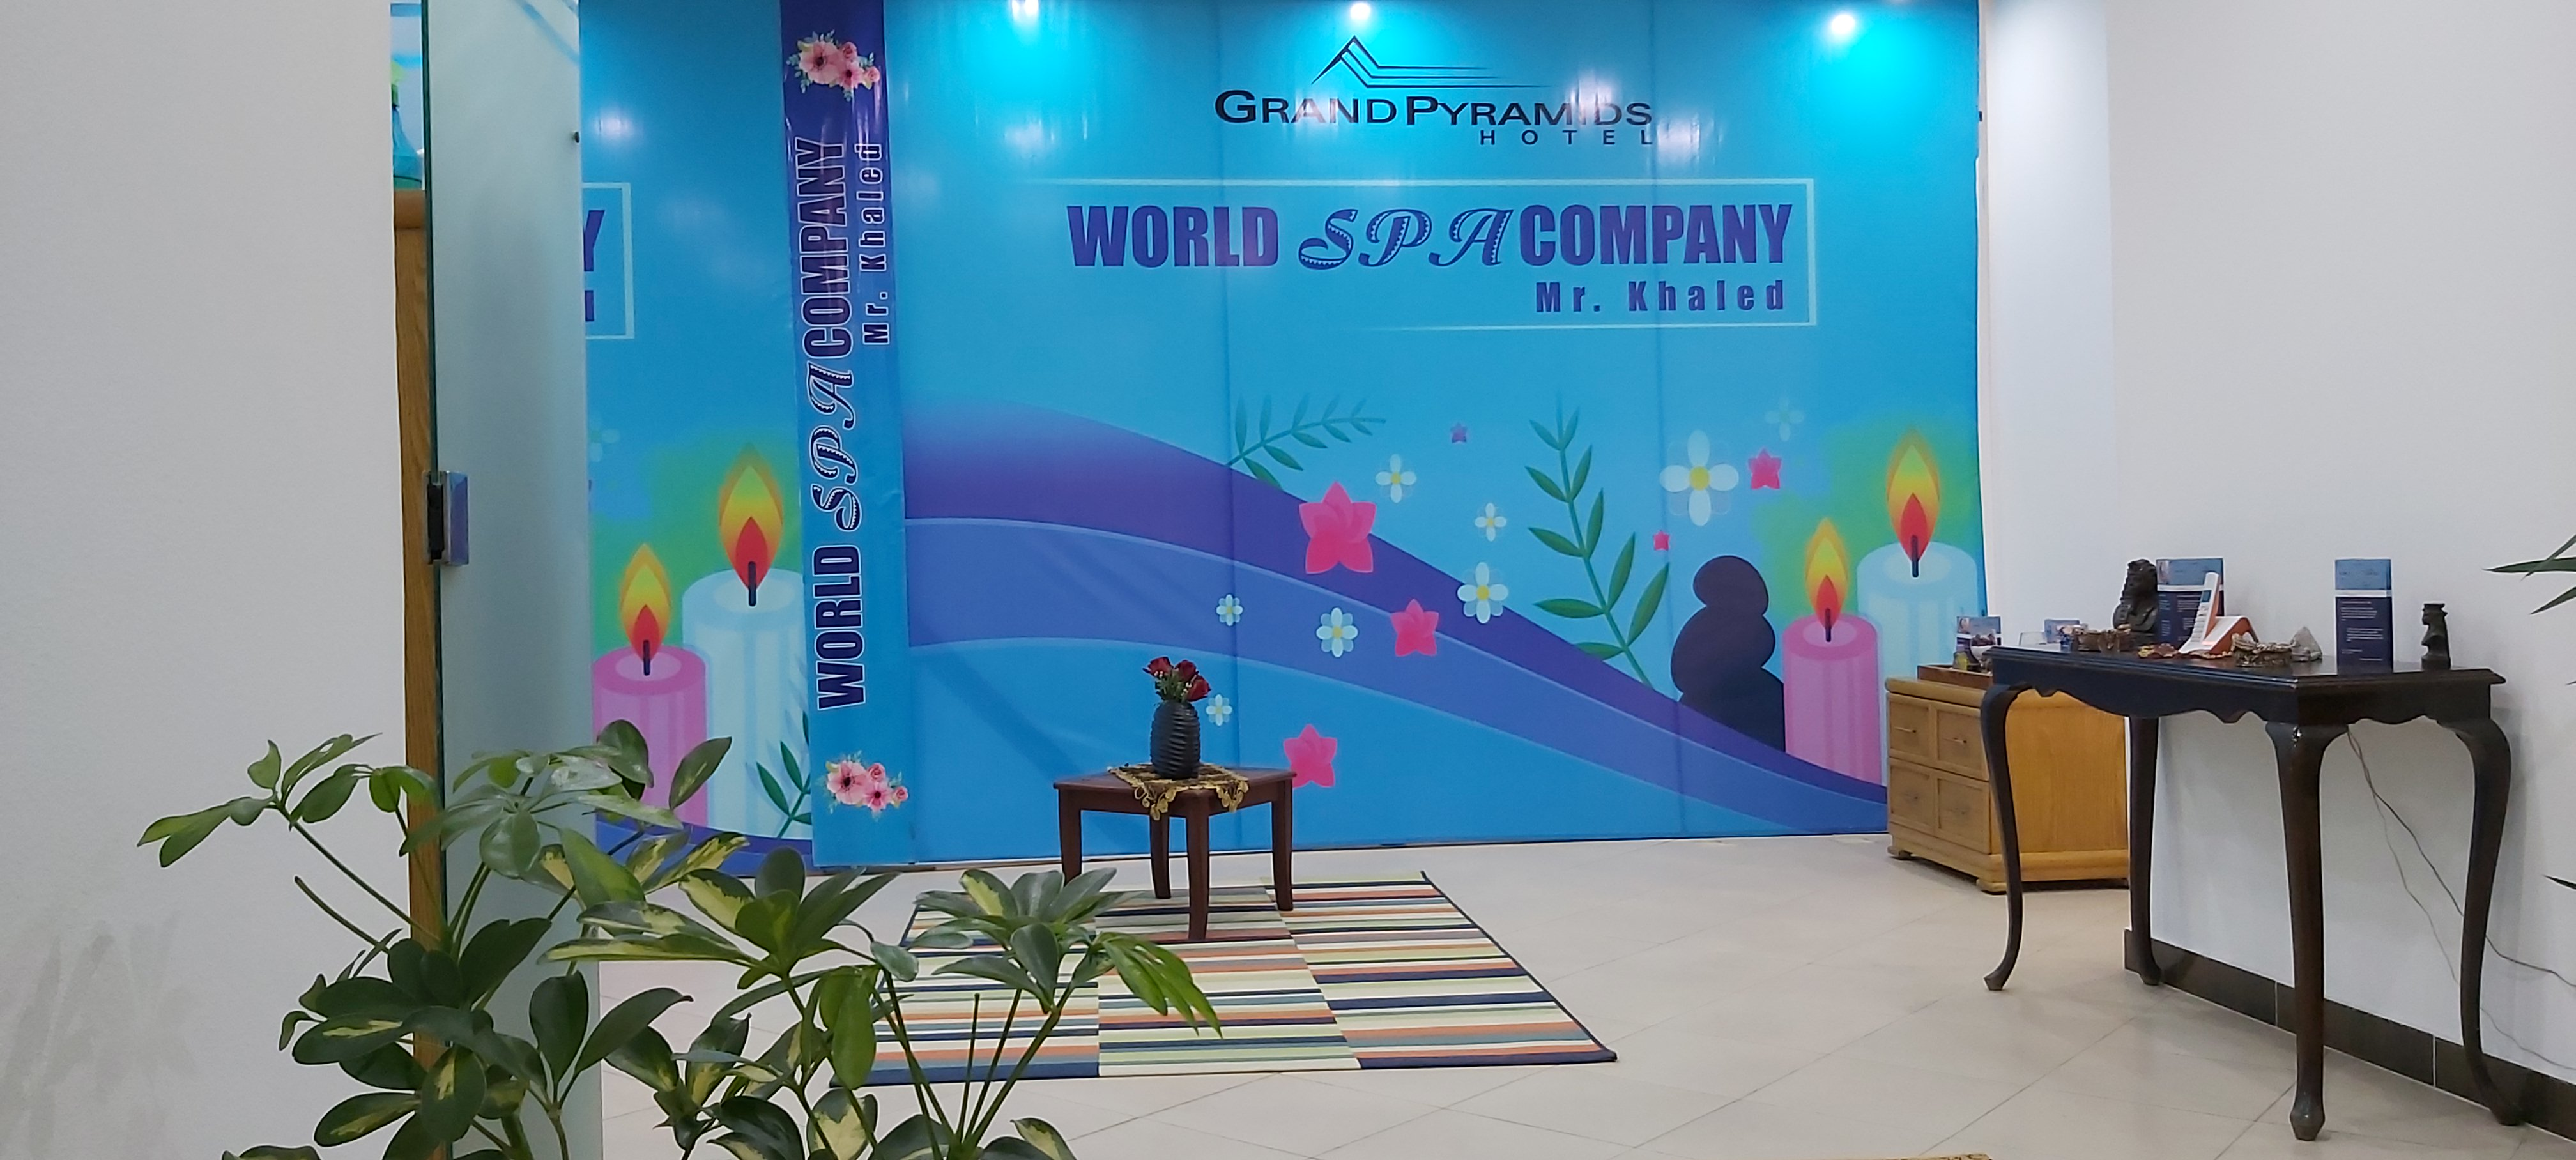 World  S P A  Company